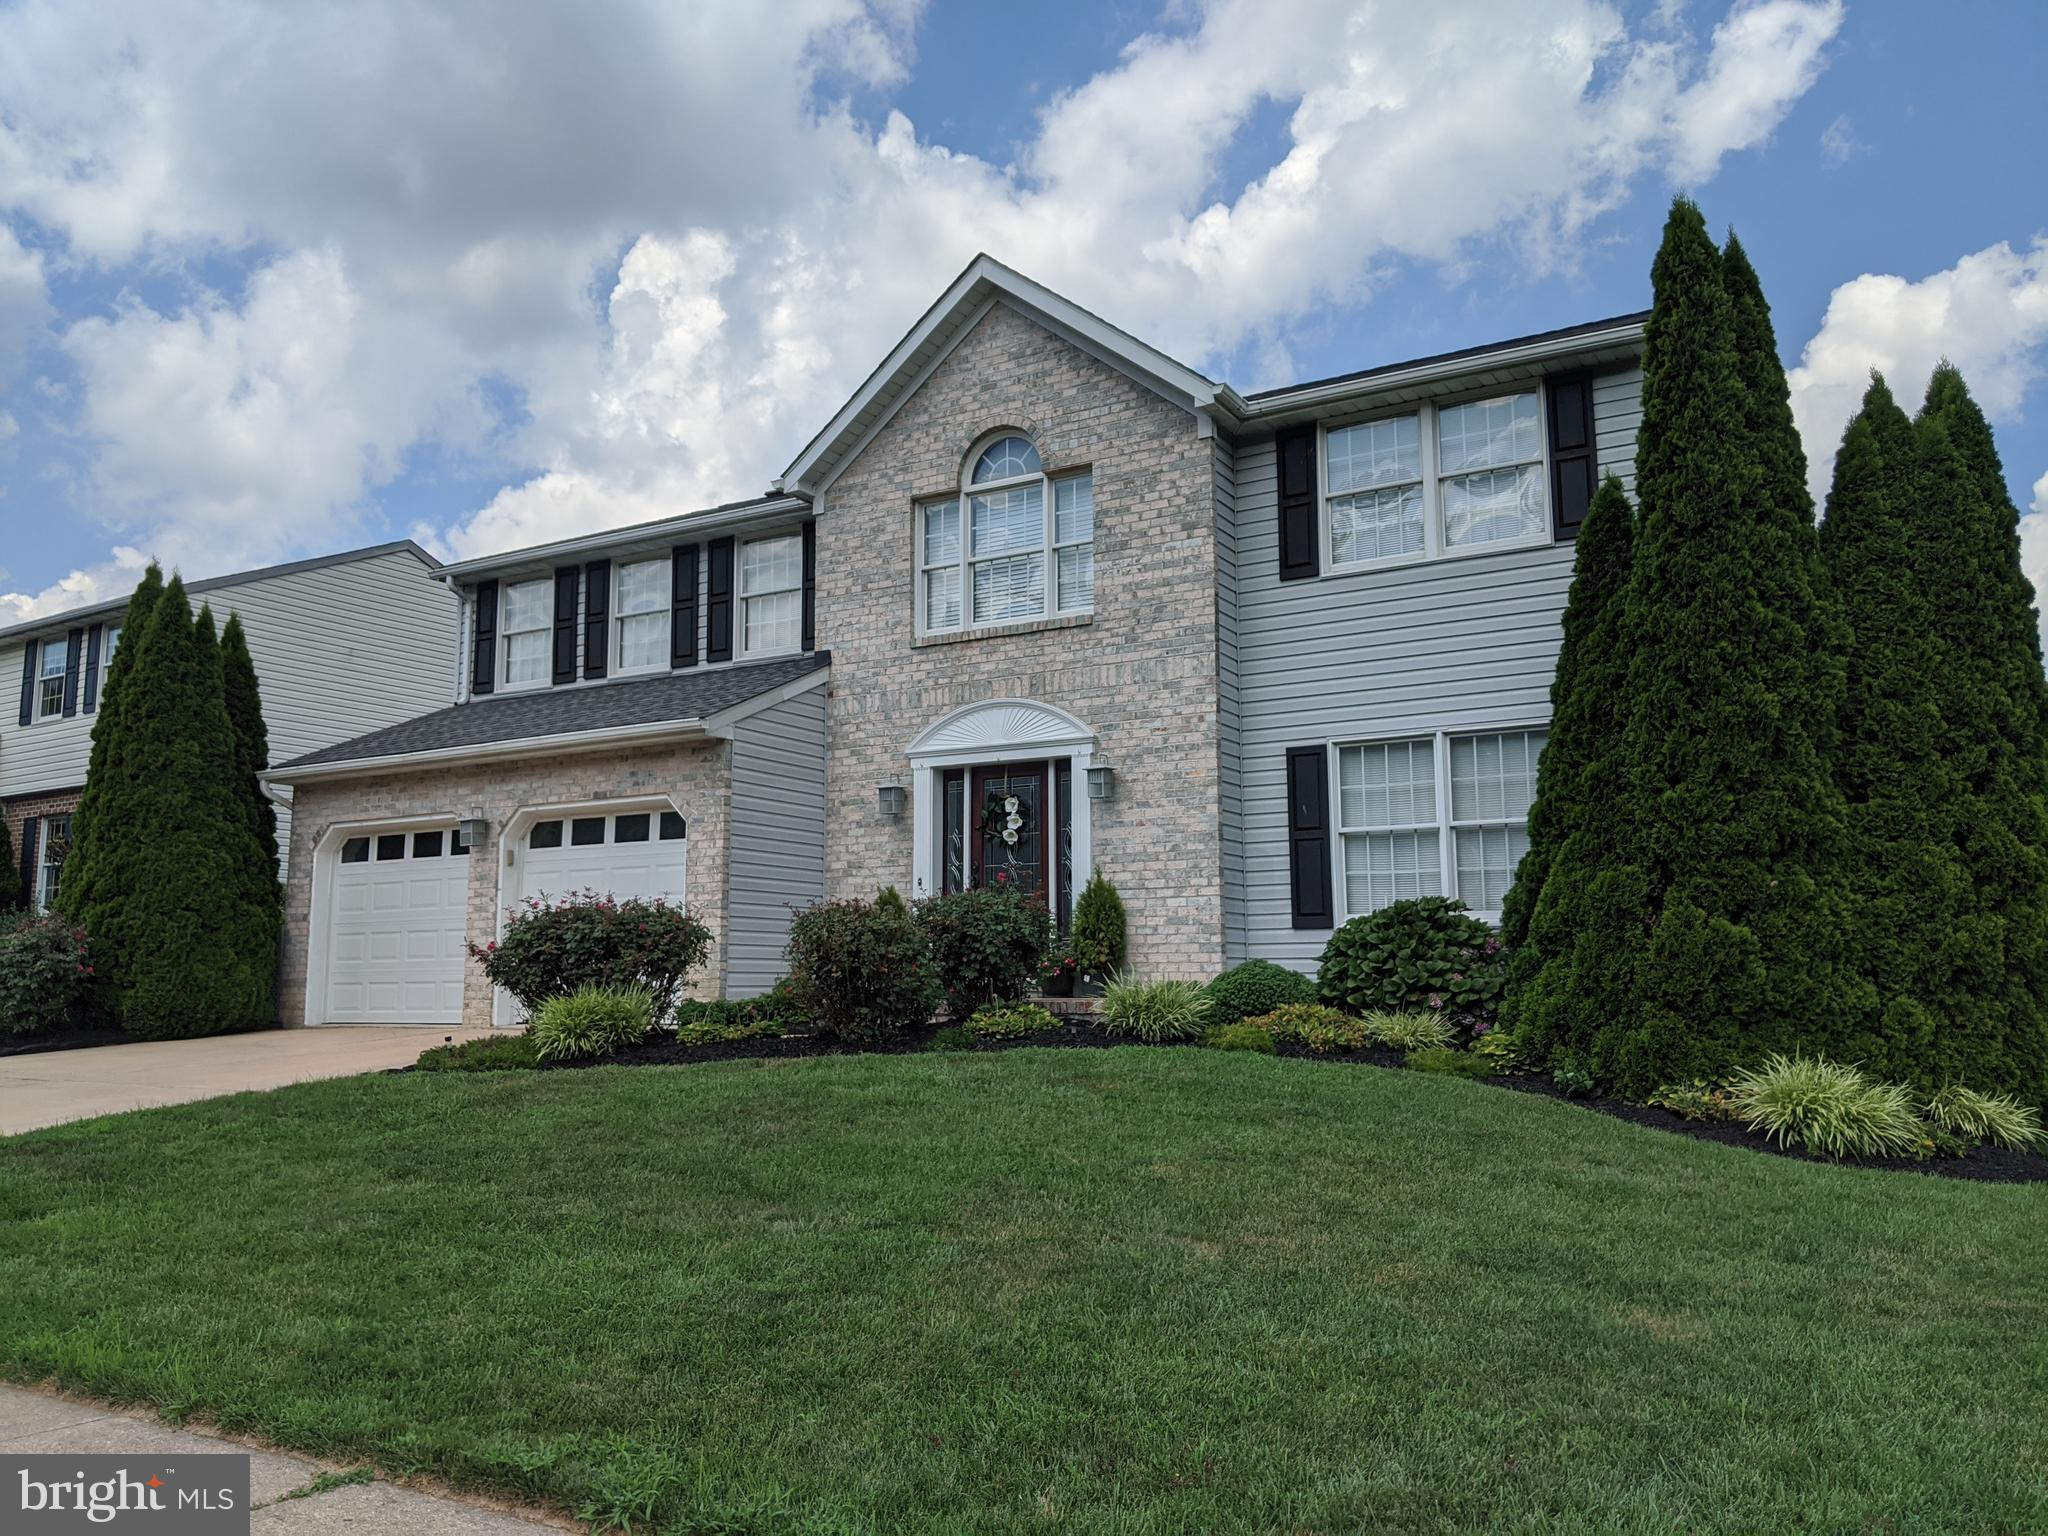 Professional decor, impeccable maintenance and desirable neighborhood make this home a gem!! Upon en